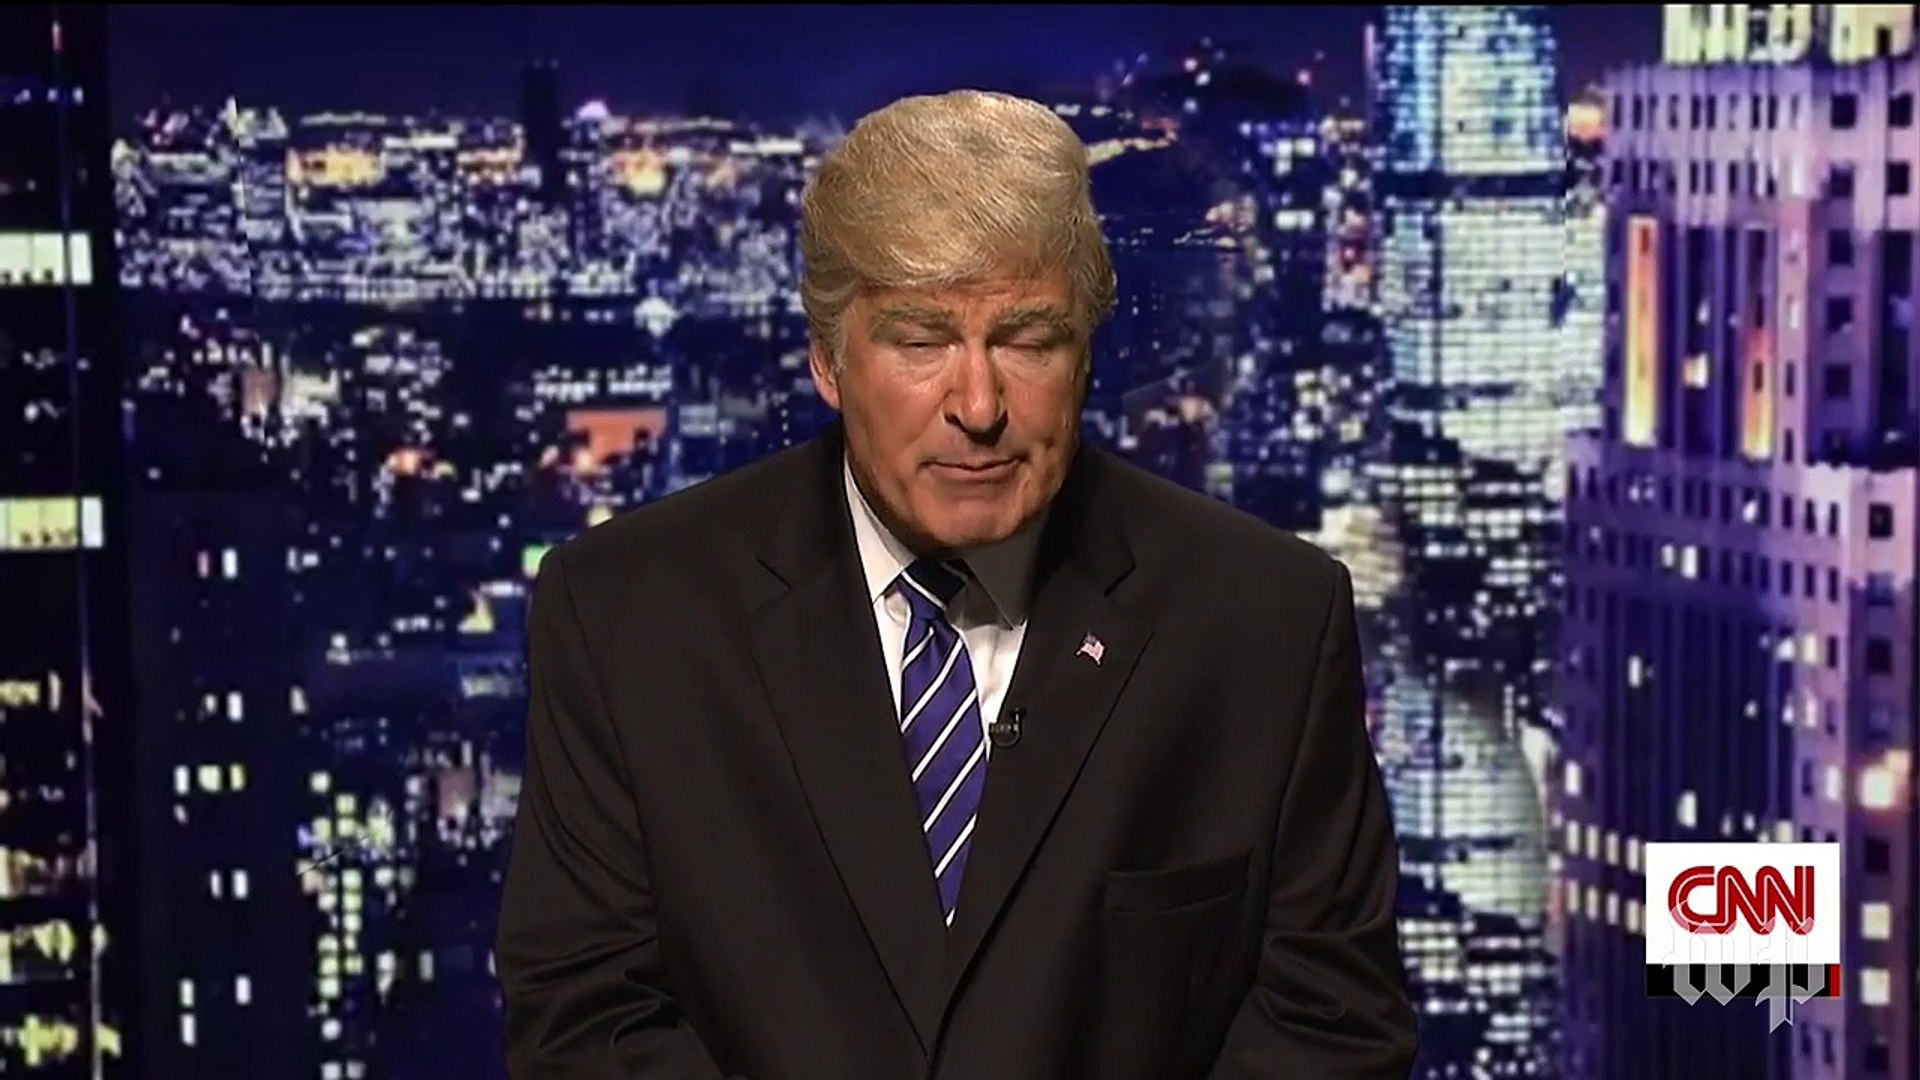 The many faces behind SNL's Donald Trump